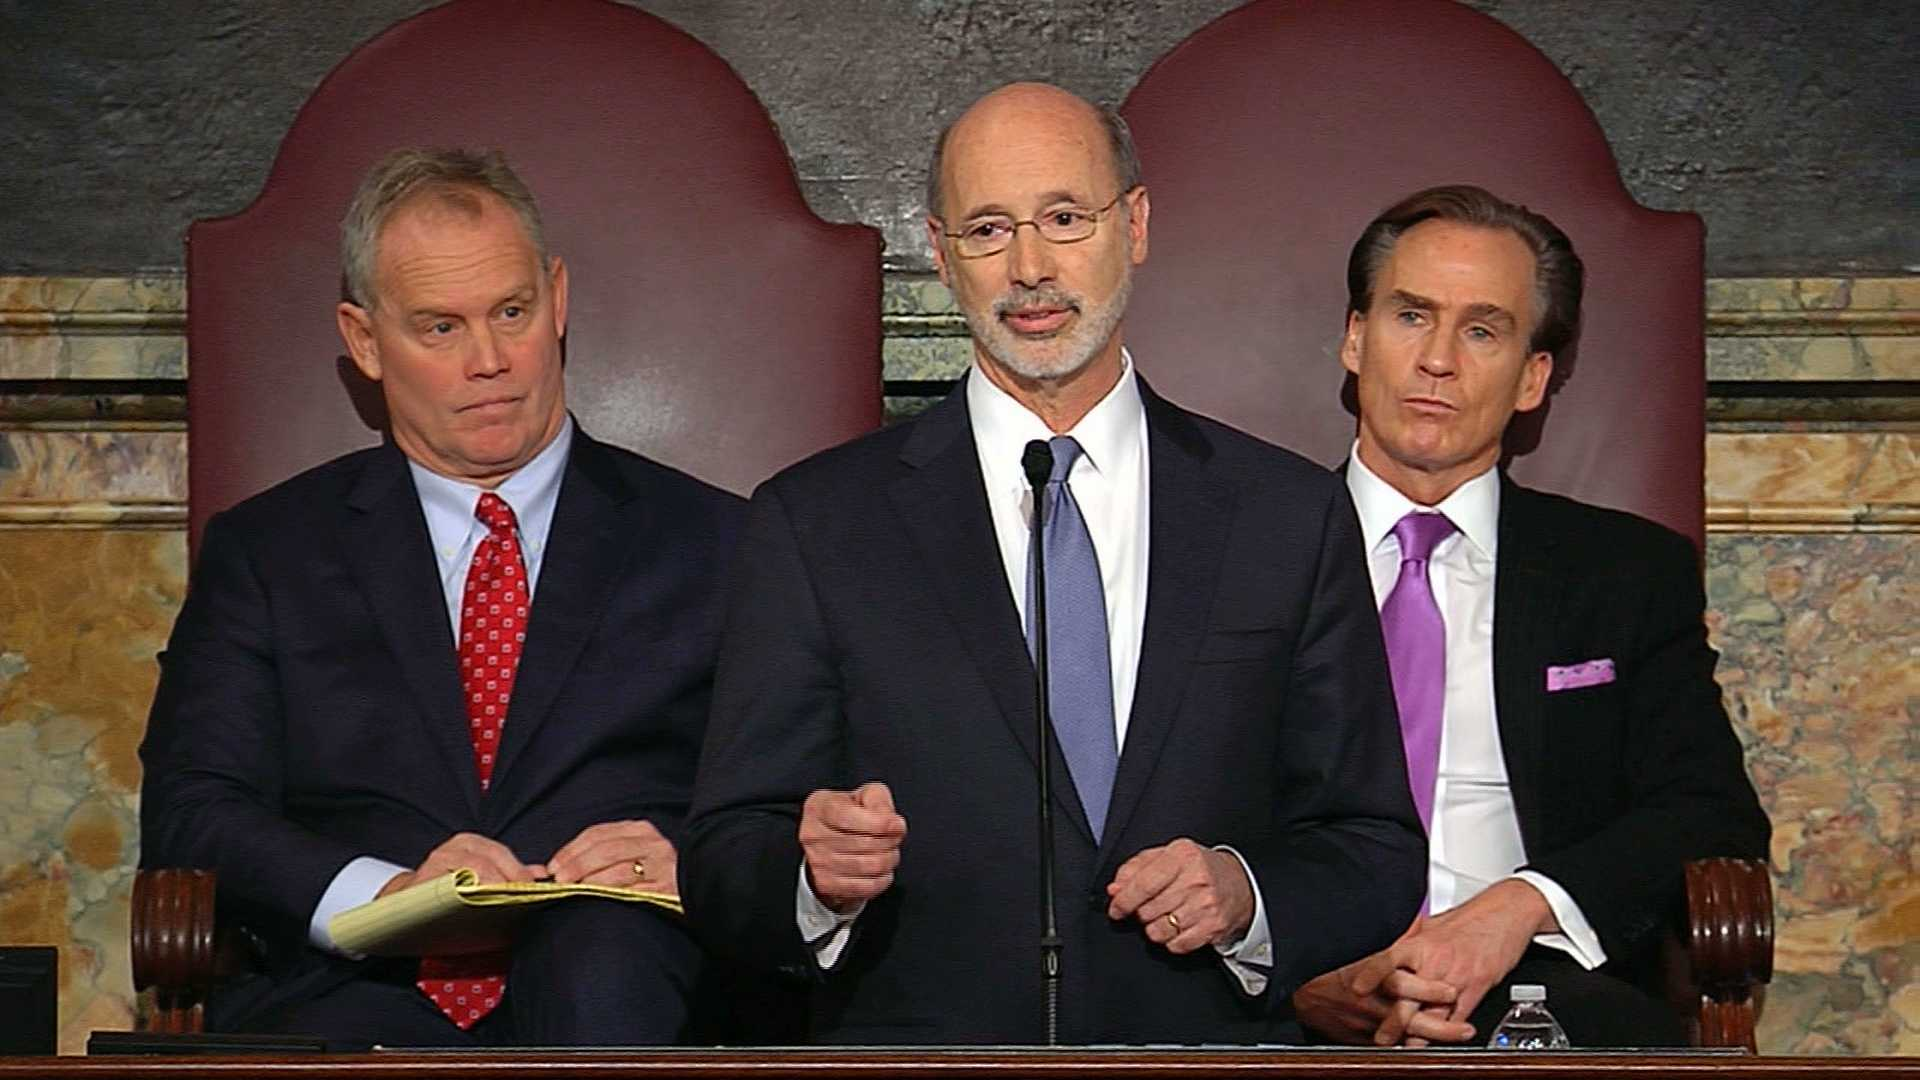 Gov. Tom Wolf (center), with House Speaker Mike Turzai (left) and Lt. Gov. Mike Stack (right).